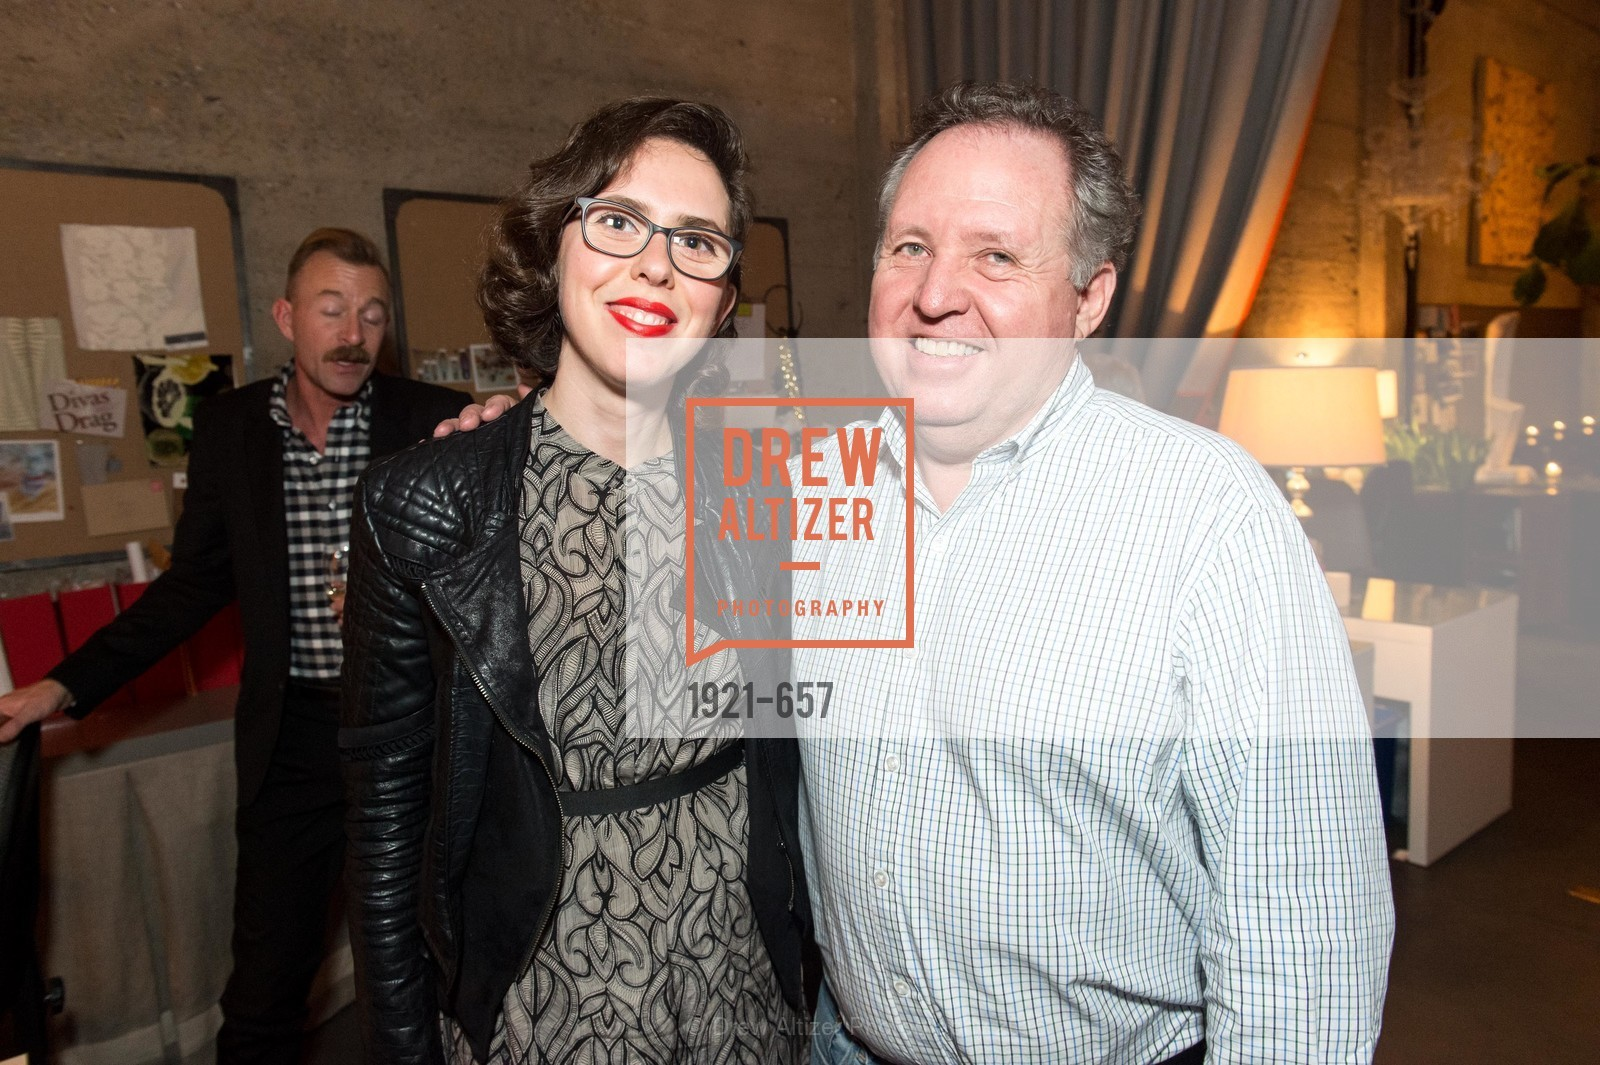 Tina Dovkin, Steven King, DDG Holiday Party, Jay Jeffers. 1035 Post St, December 16th, 2015,Drew Altizer, Drew Altizer Photography, full-service event agency, private events, San Francisco photographer, photographer California